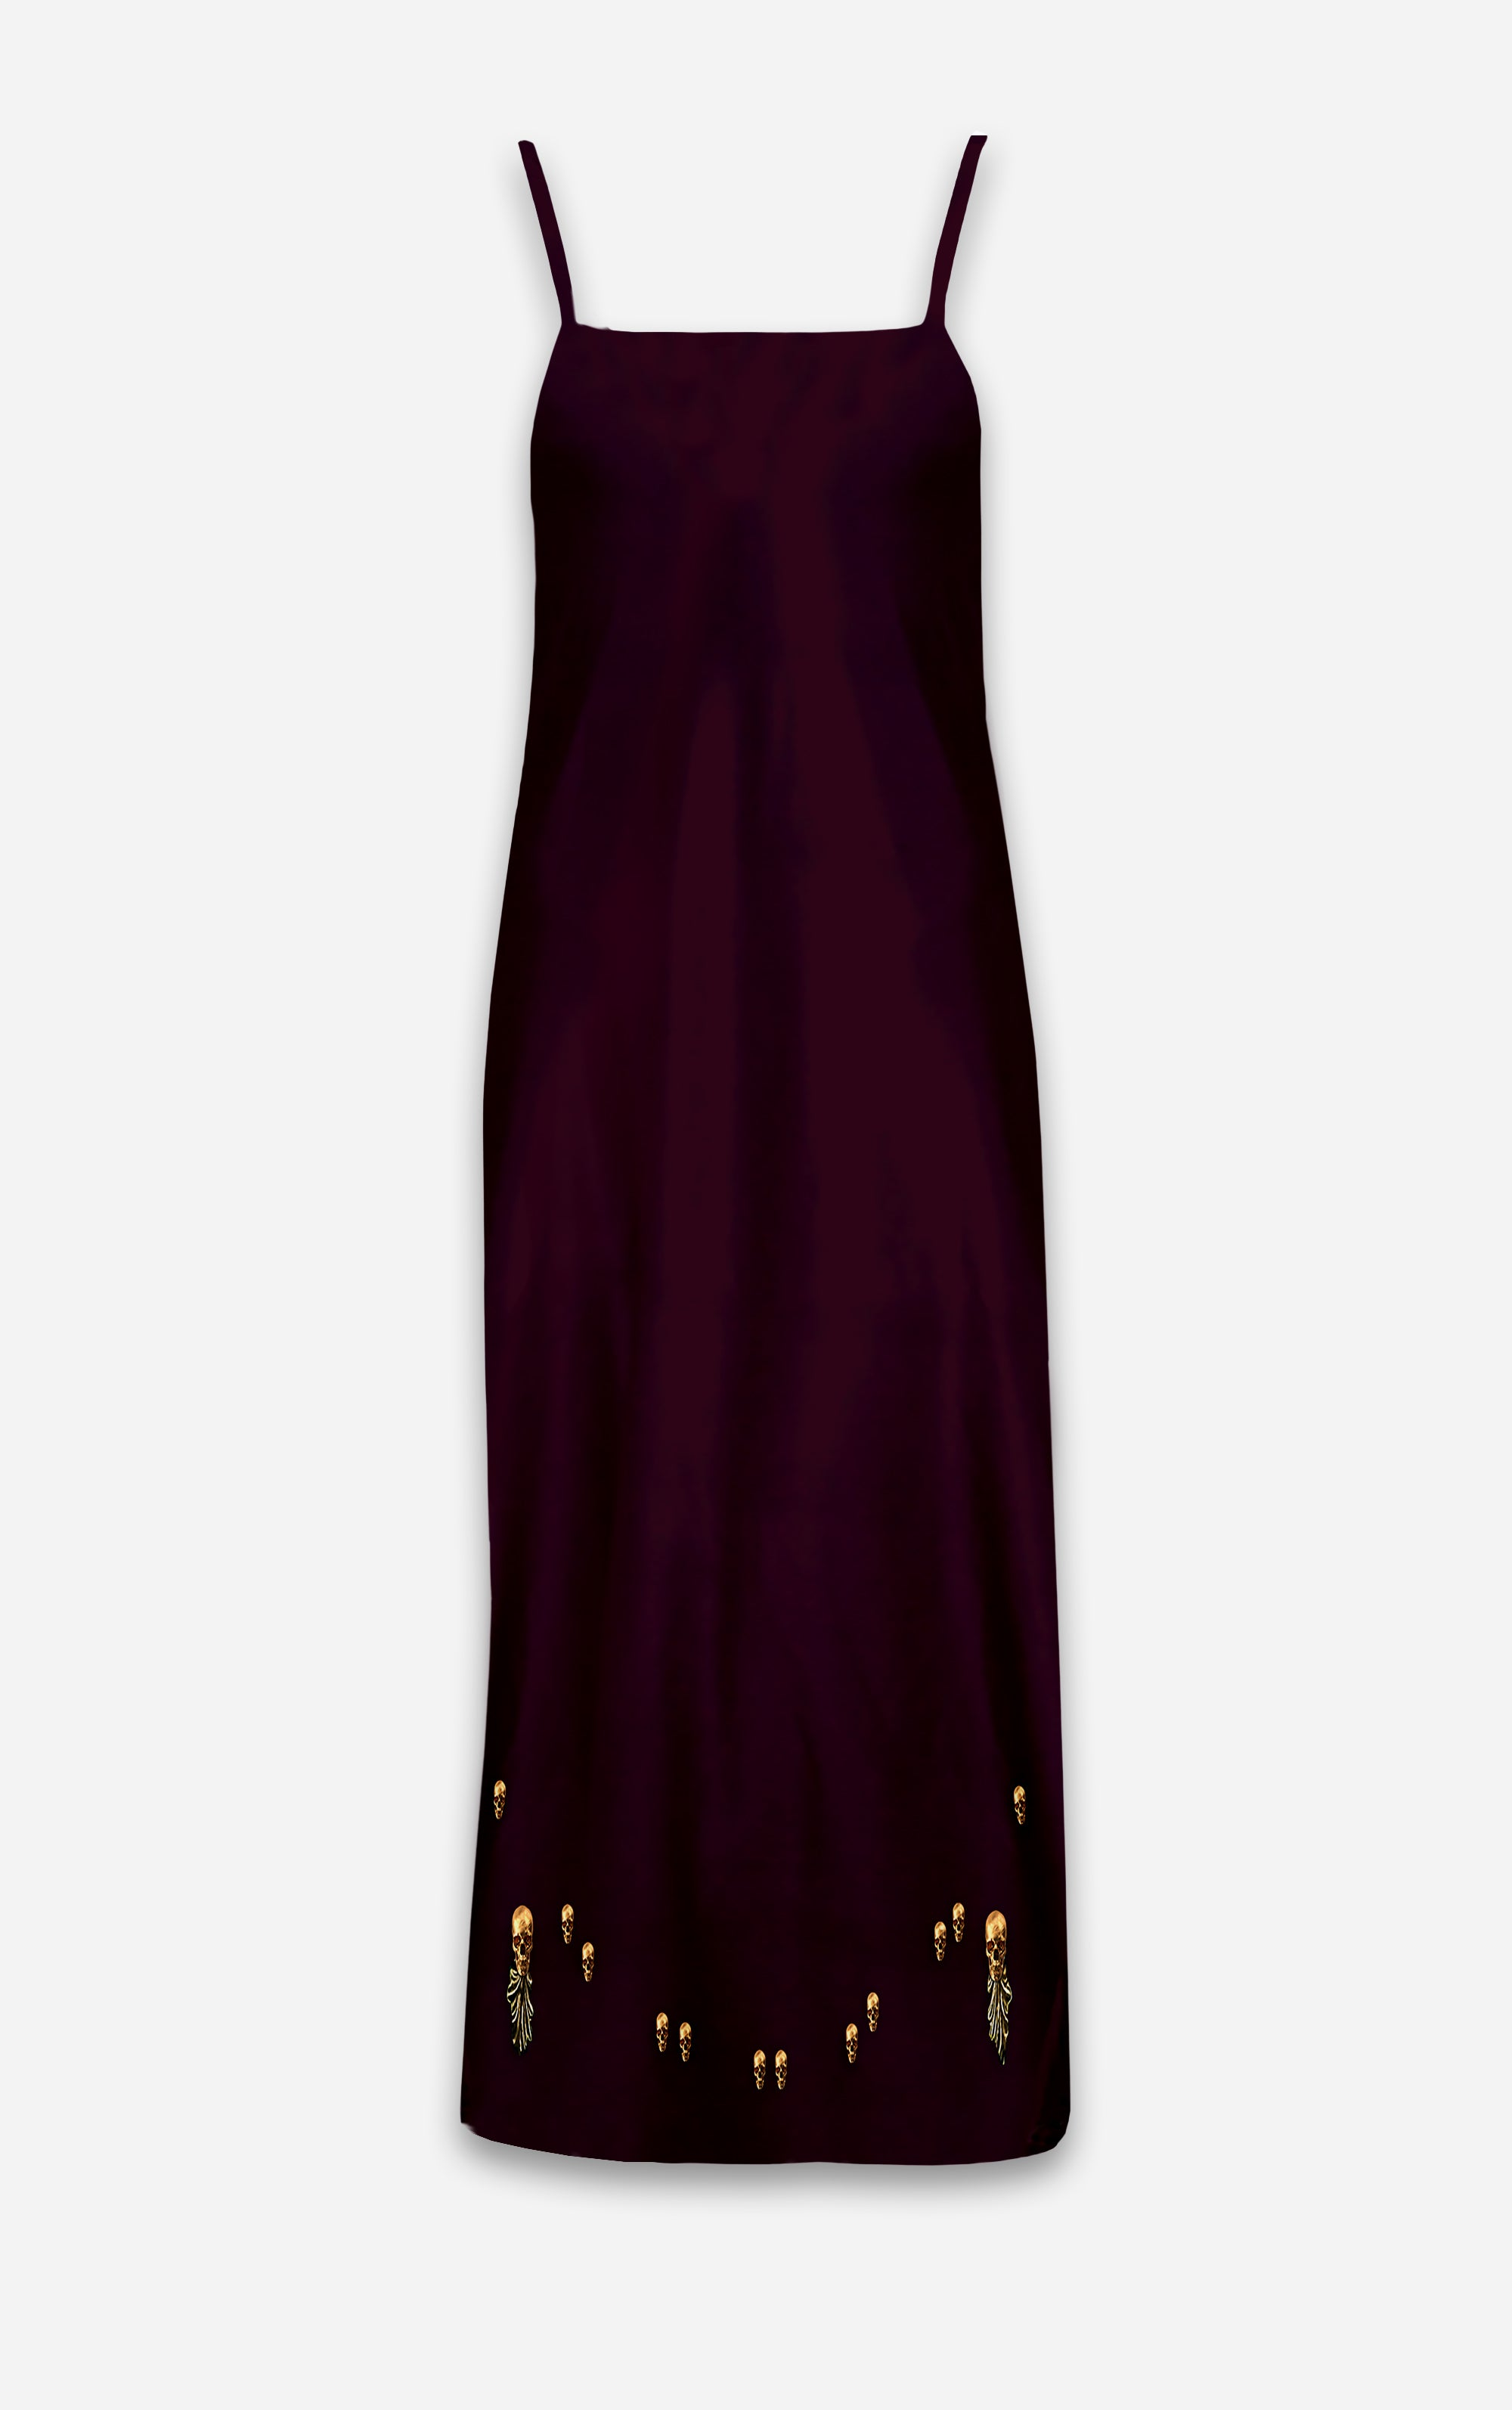 The Others- Baroque Skull- French Gothic V Neck Slip Dress in Eggplant Wine | Le Leanian™